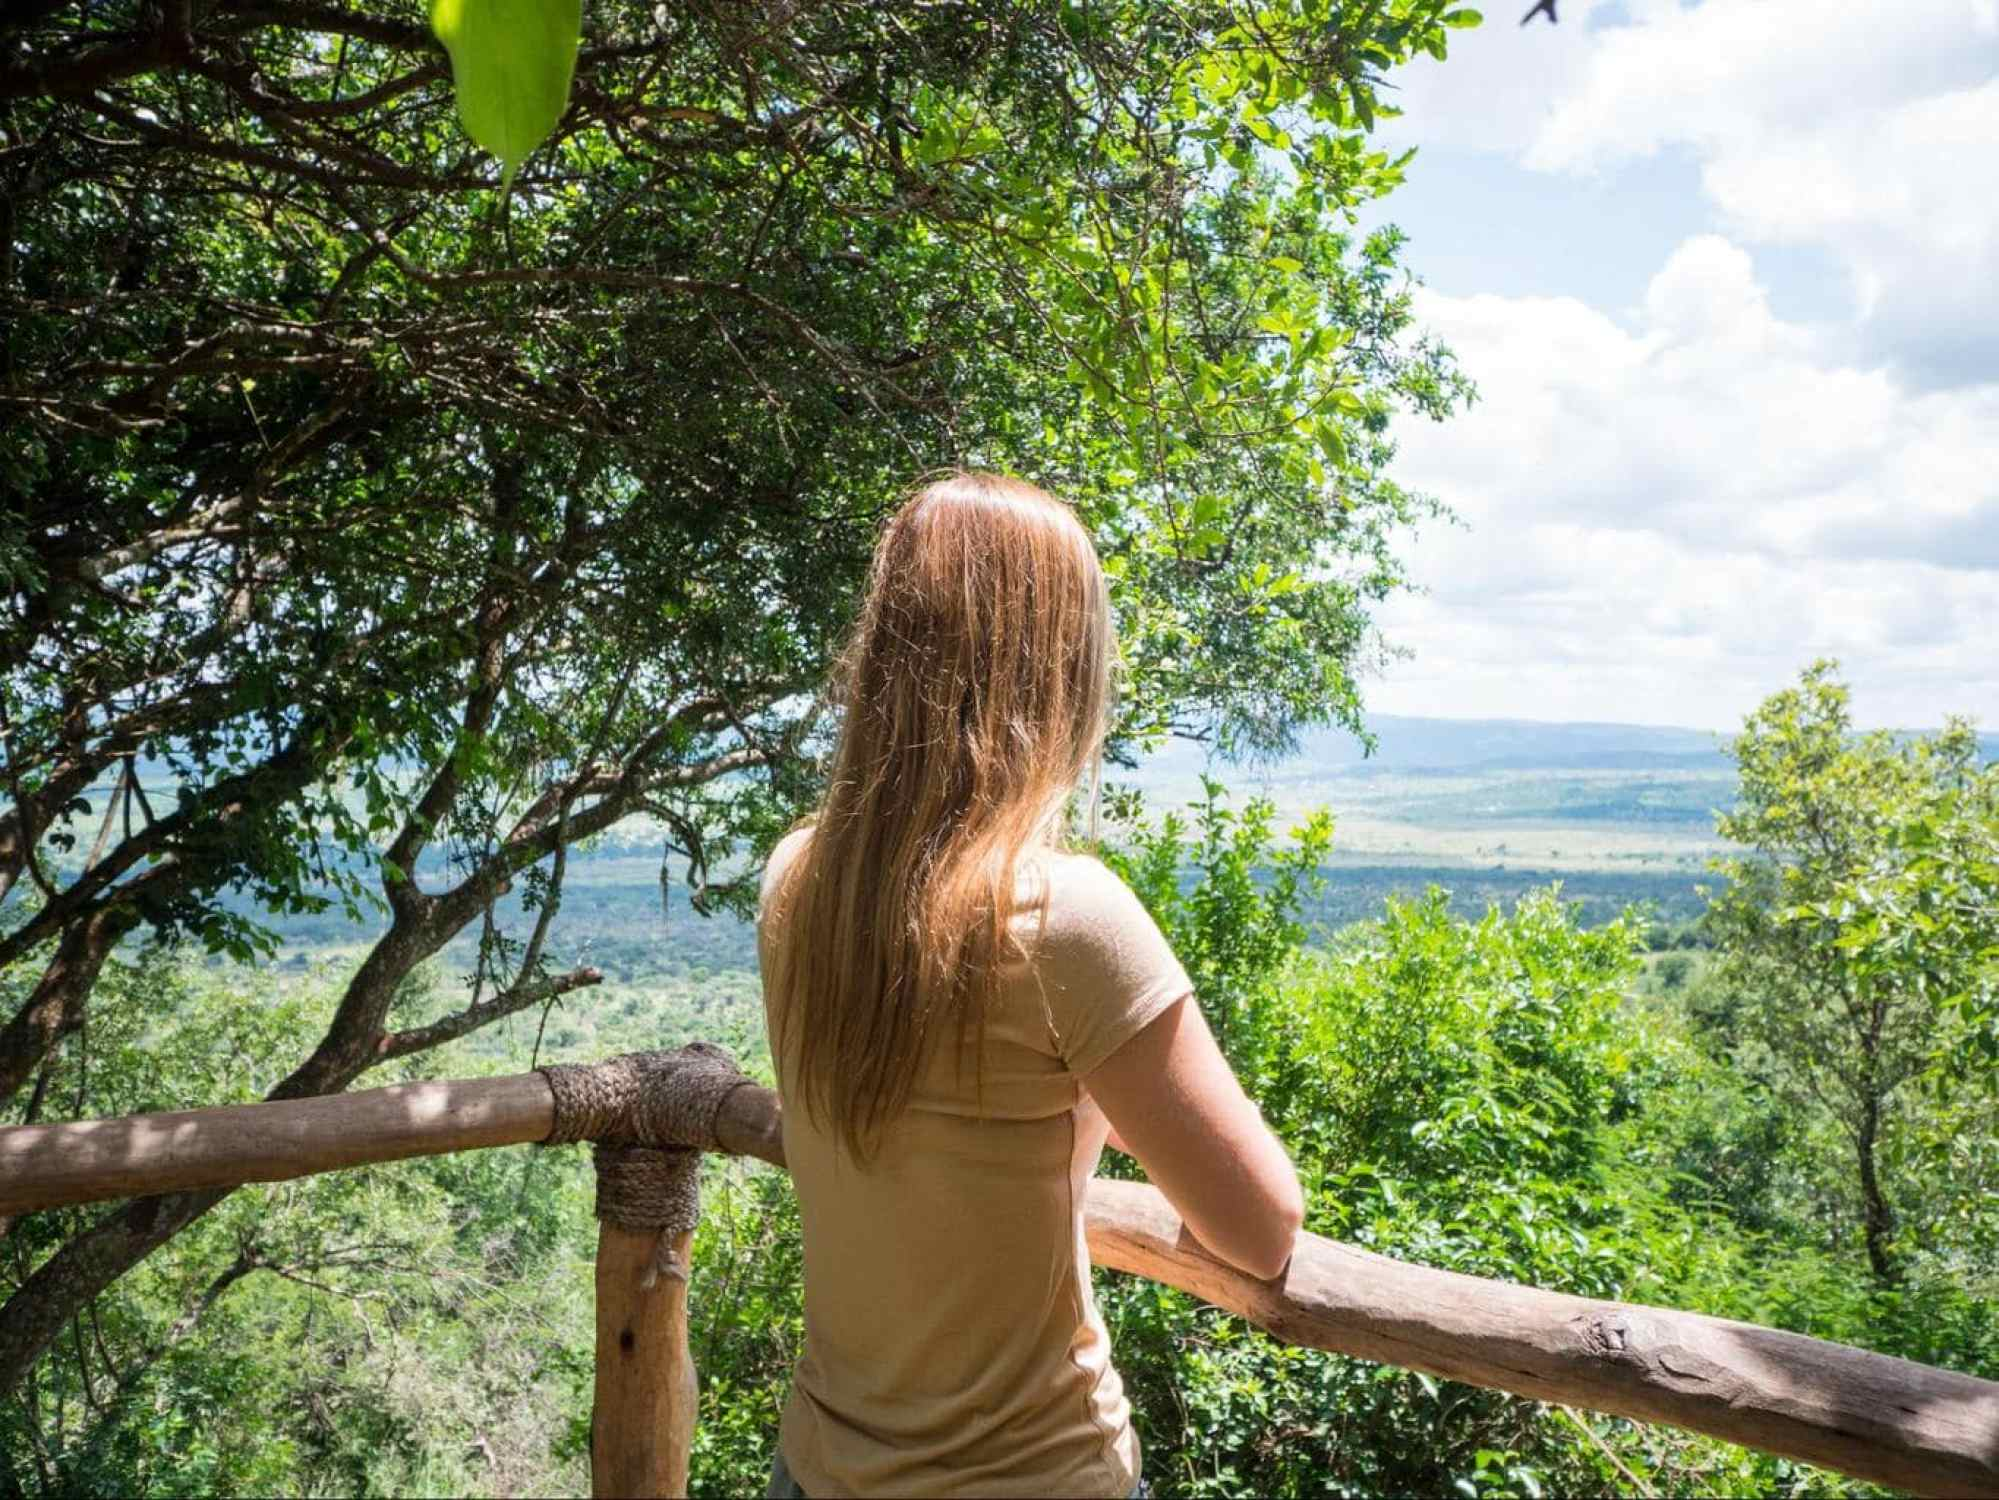 The view over Akagera National Park from the park's headquarters